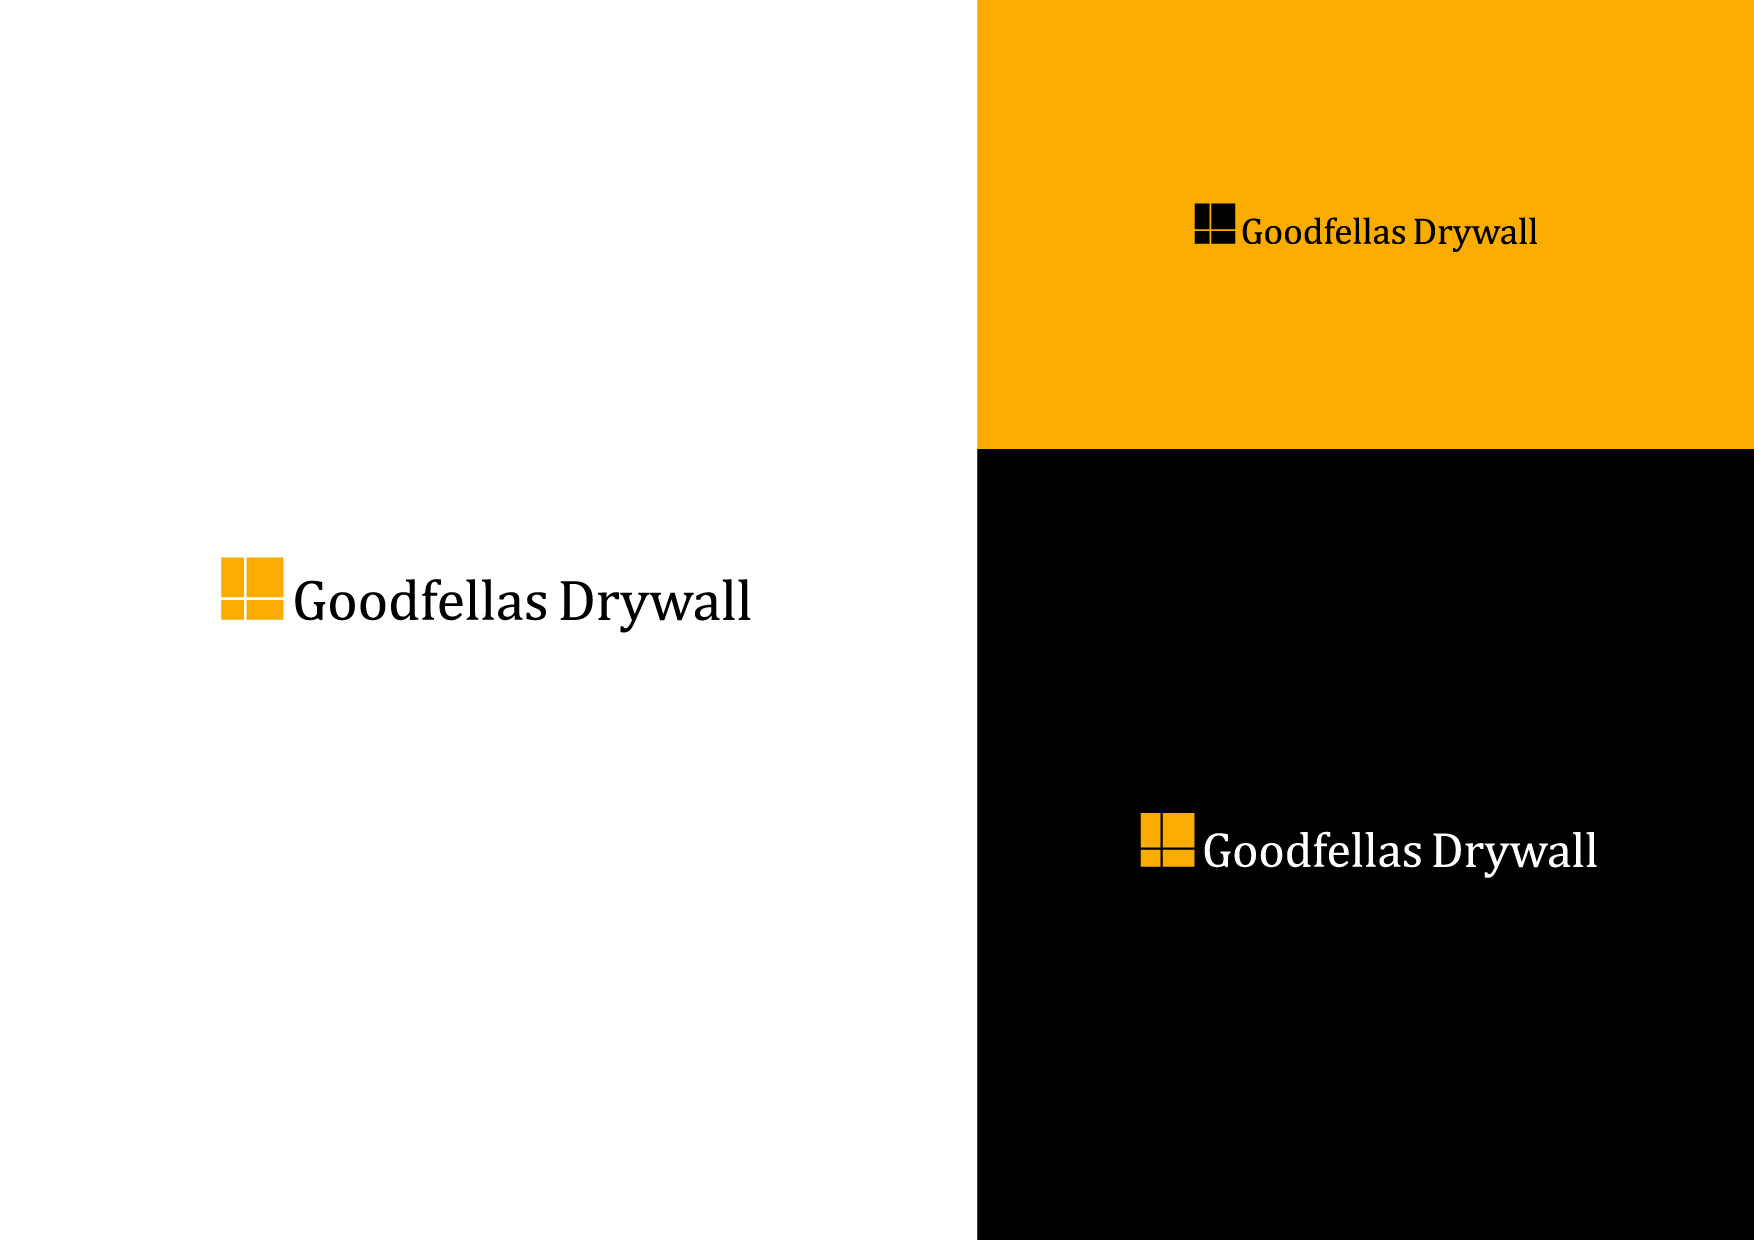 Logo Design by Osi Indra - Entry No. 15 in the Logo Design Contest Creative Logo Design for Goodfellas Drywall.